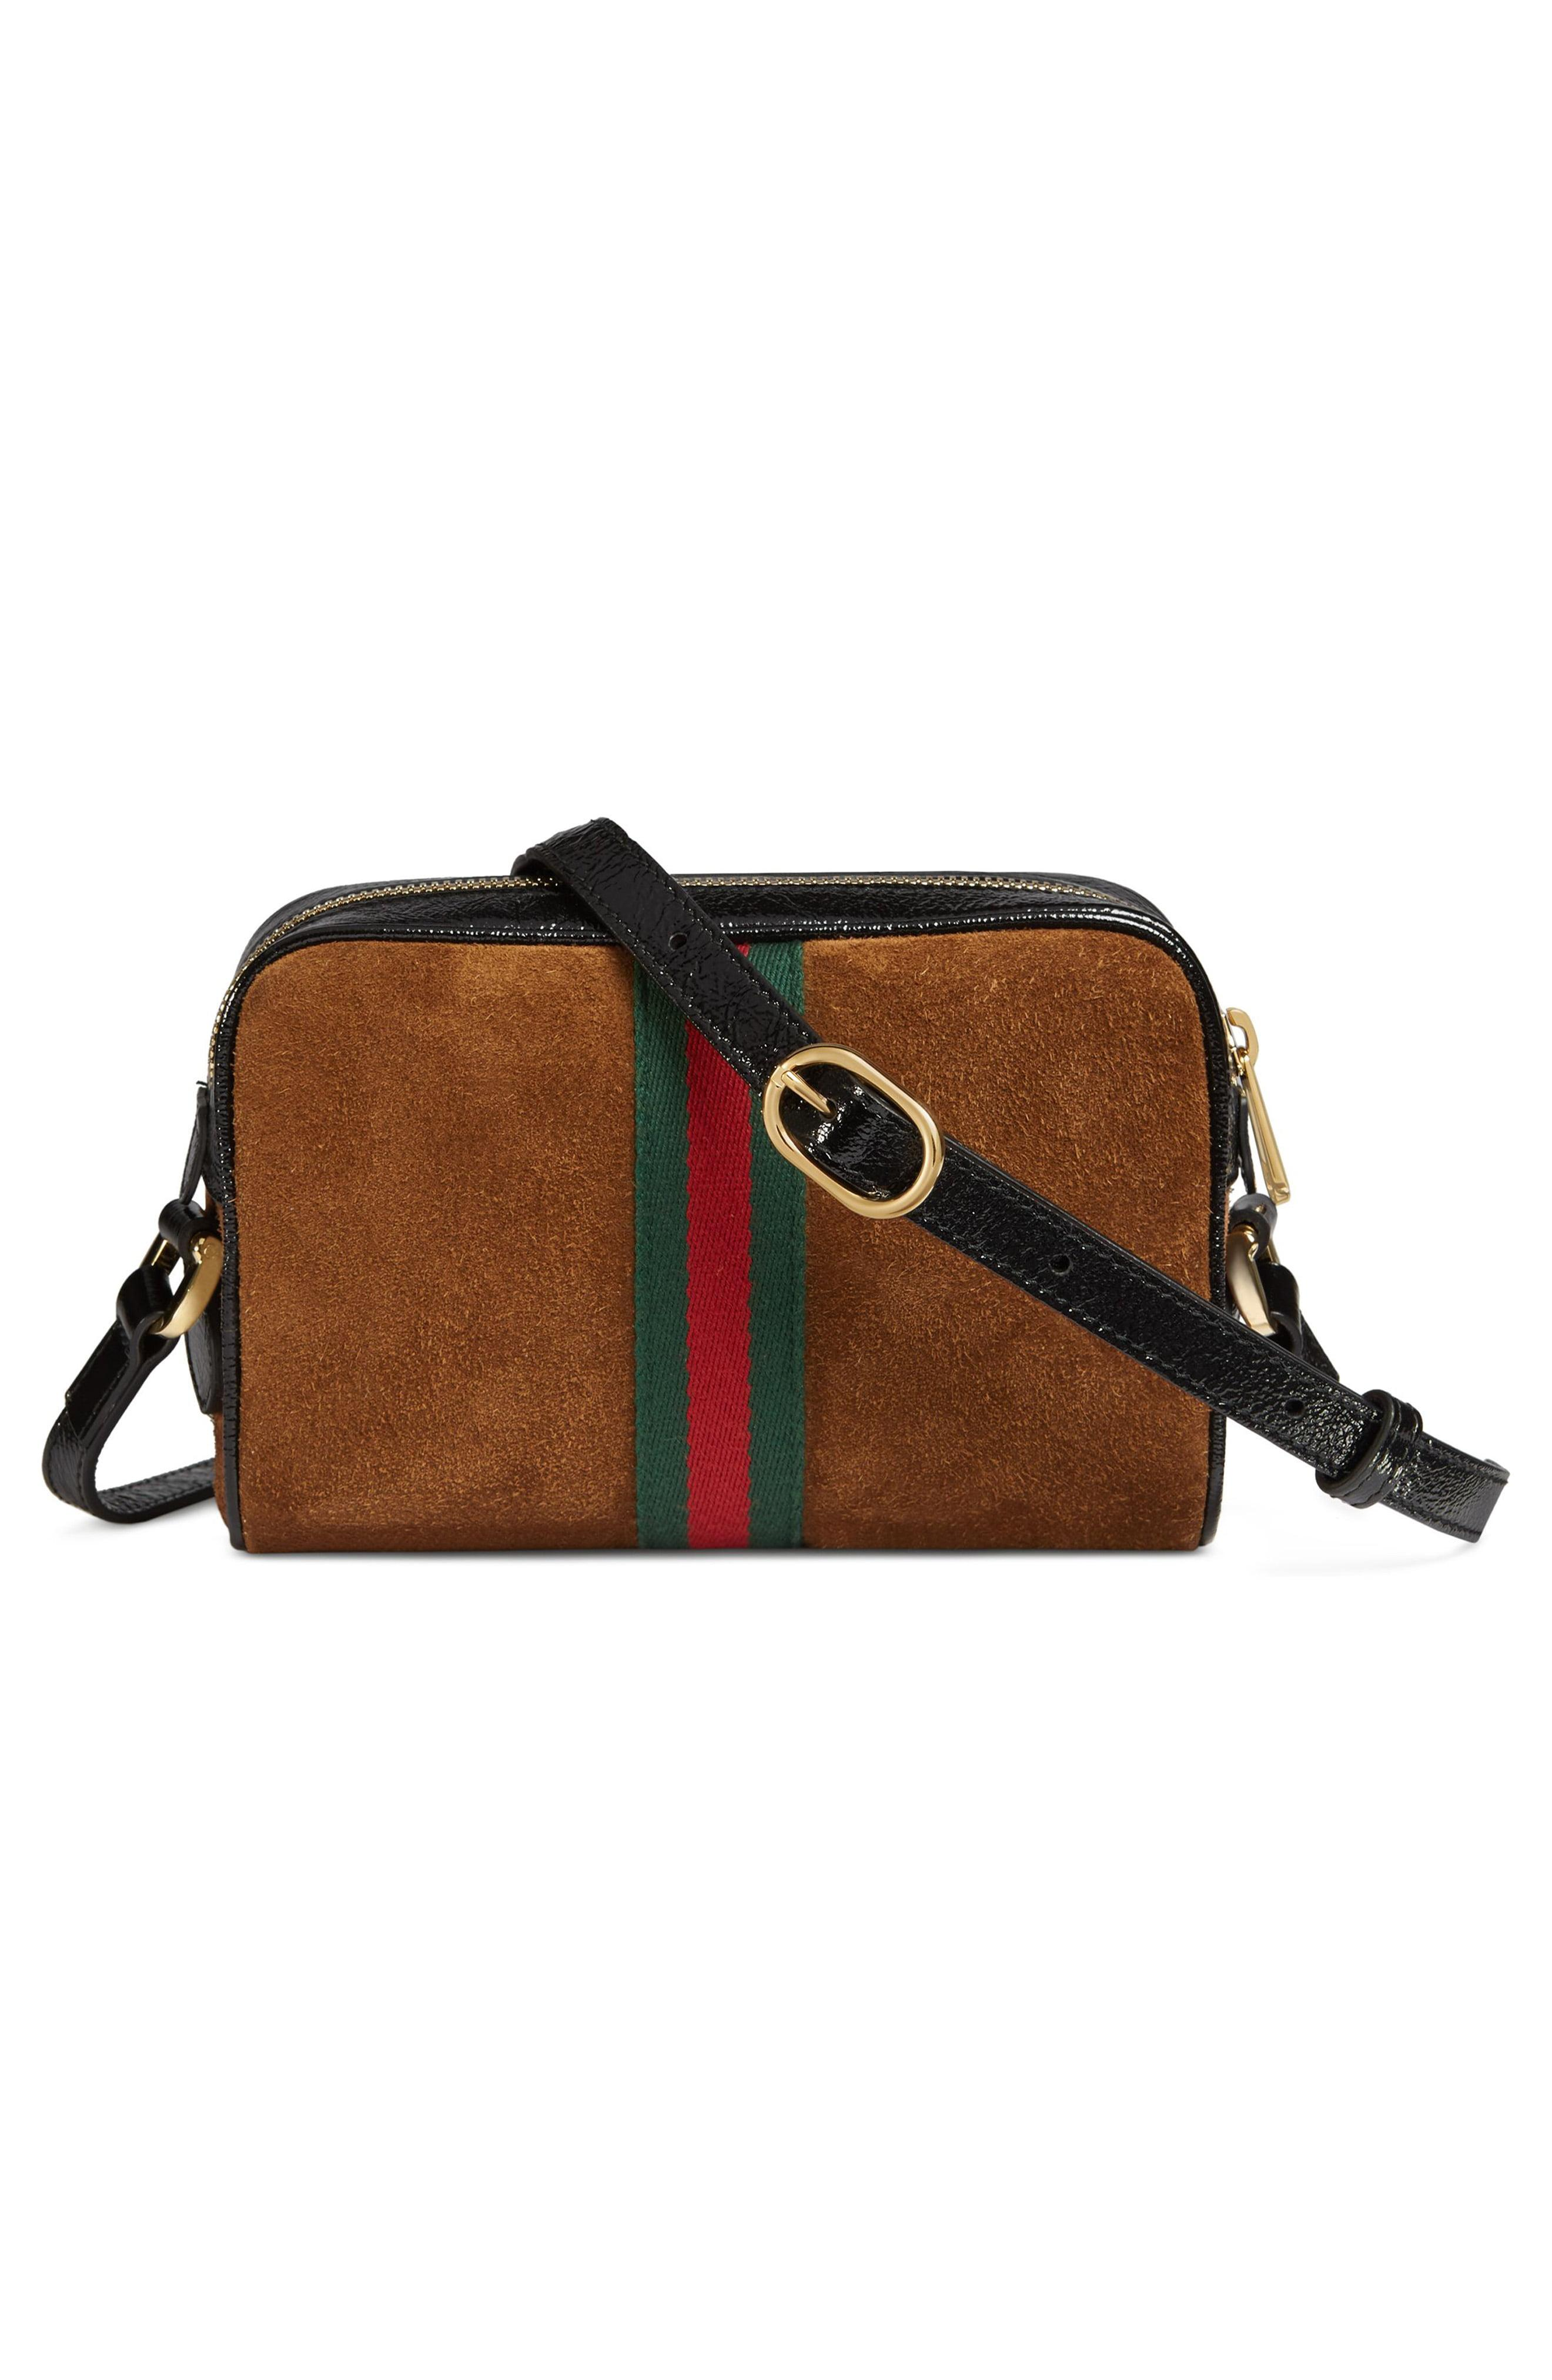 956c5eccef8 Gucci - Multicolor Ophidia Small Suede   Leather Crossbody Bag - - Lyst.  View fullscreen